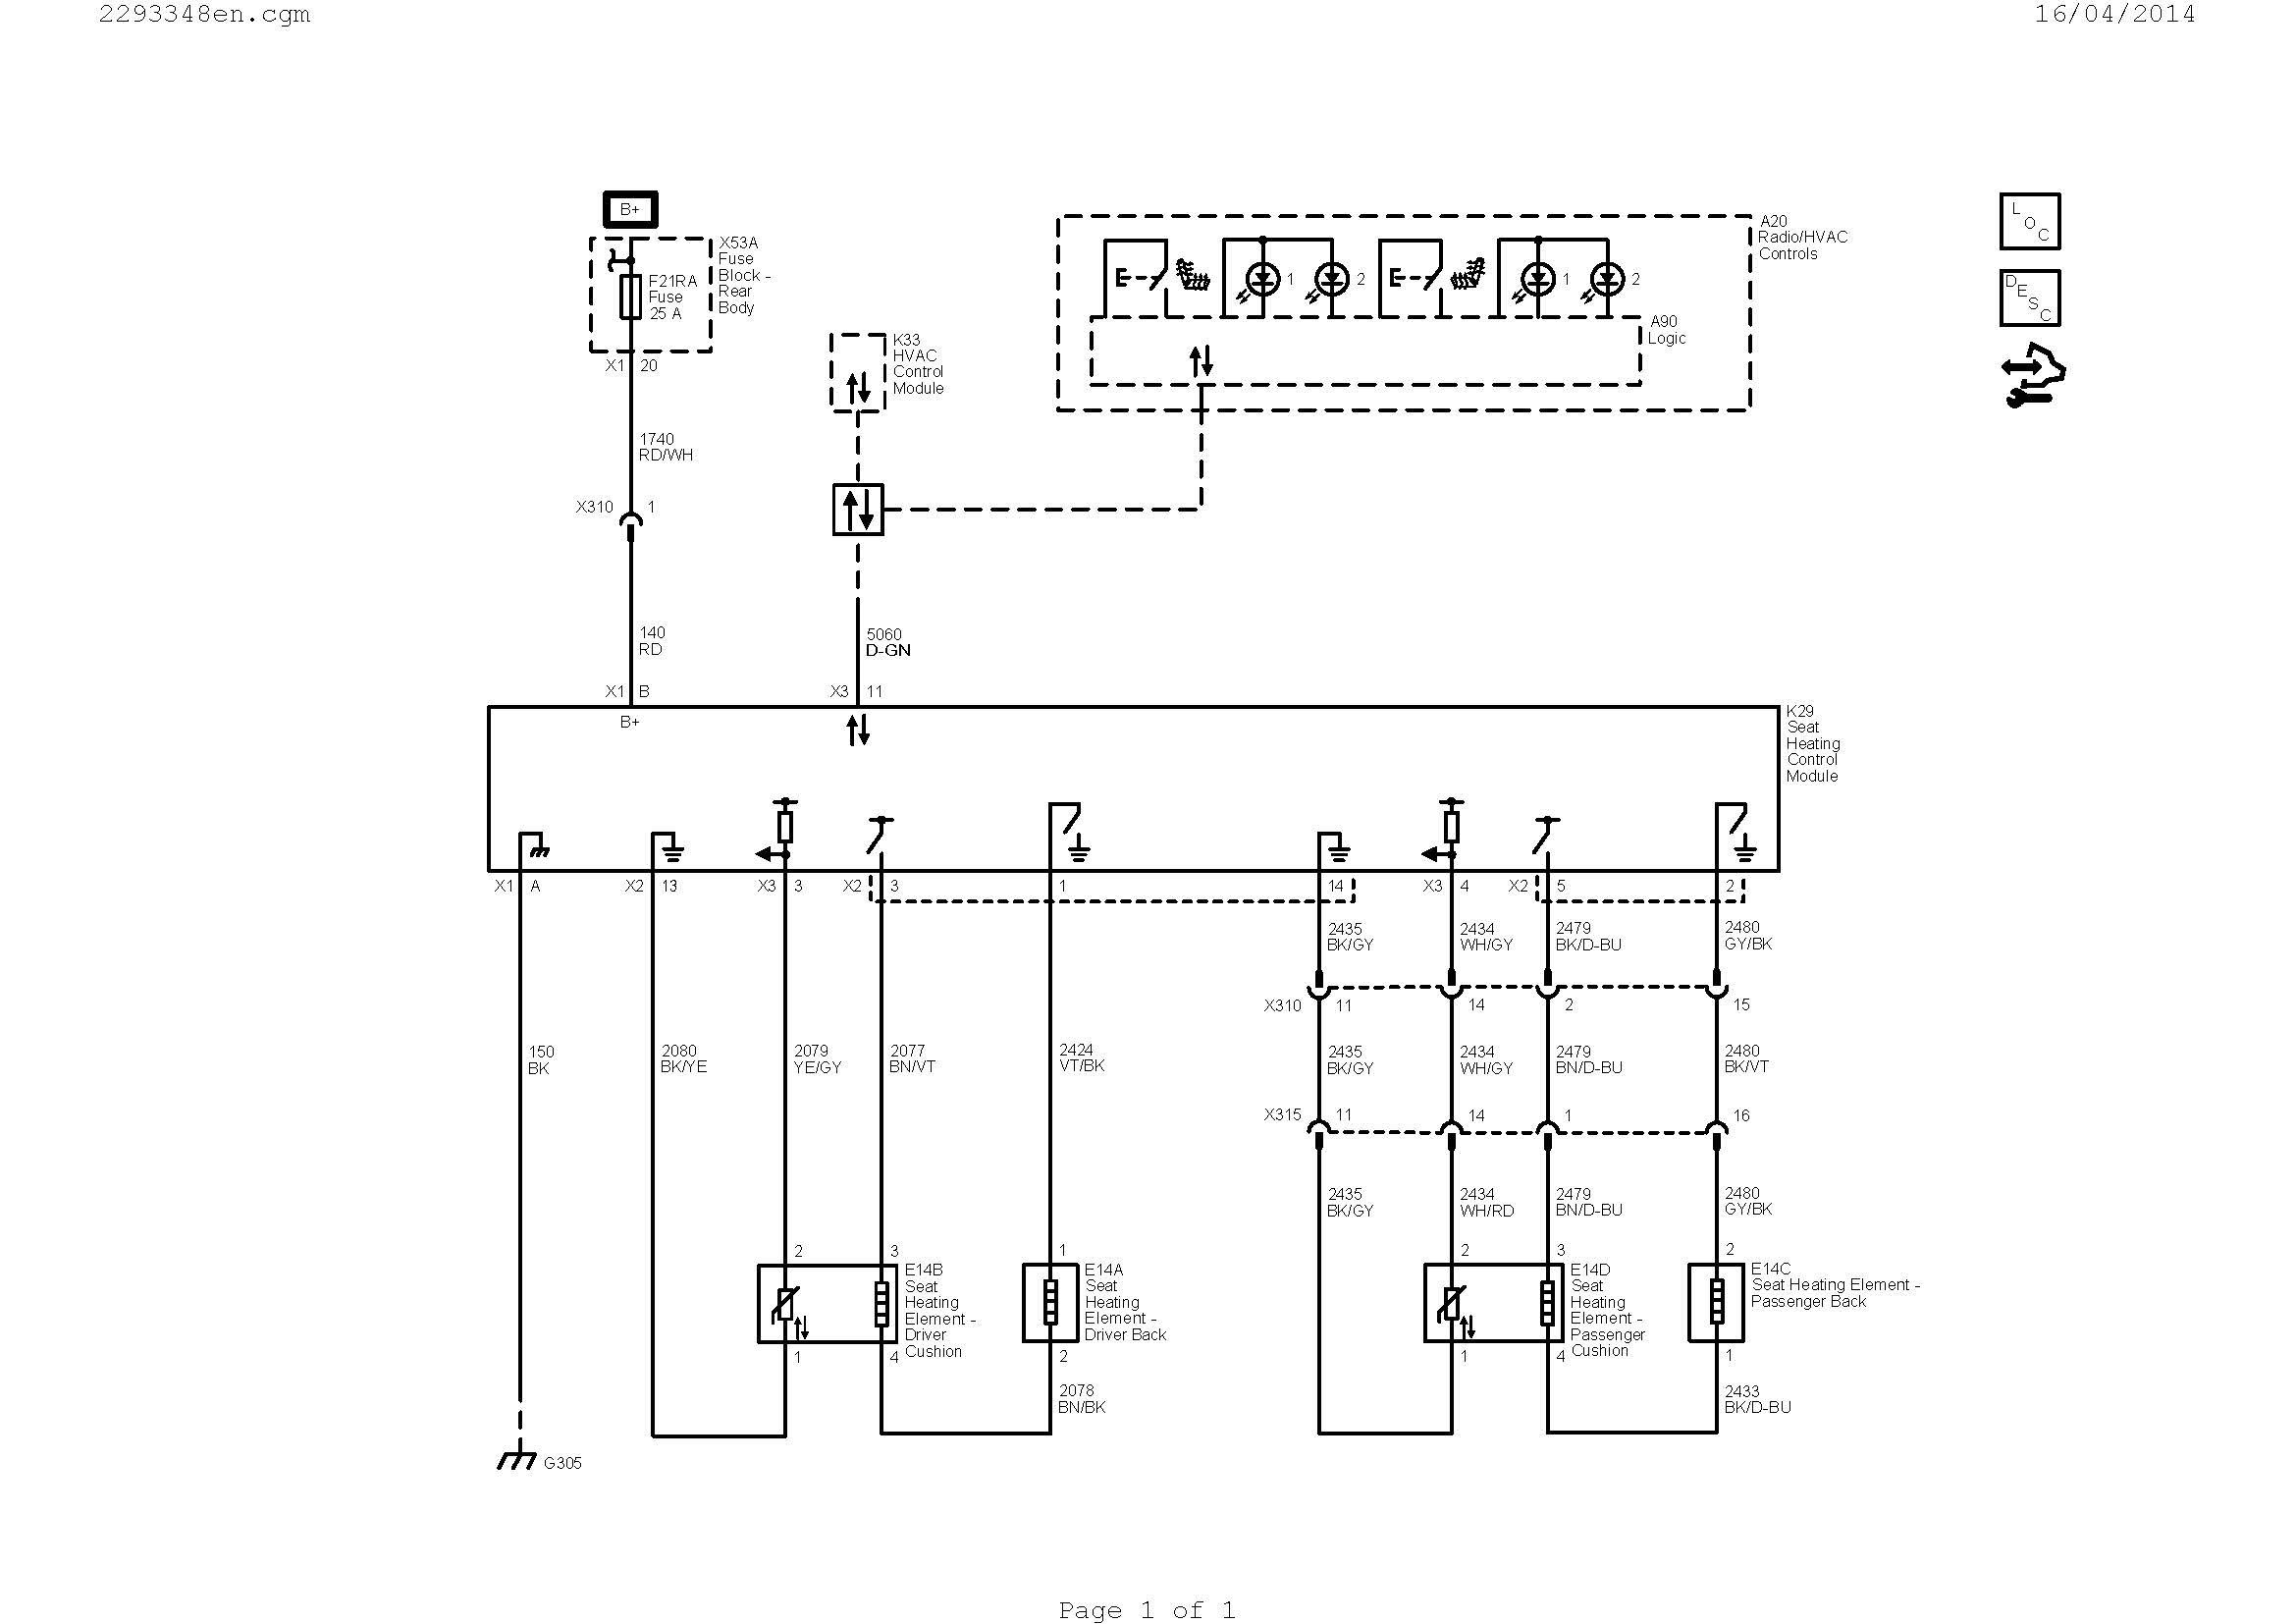 xsvi 6522 nav wiring diagram Collection-furnace wiring diagram Download Furnace Parts Diagram New Hvac Diagram Best Hvac Diagram 0d – DOWNLOAD Wiring Diagram 10-l